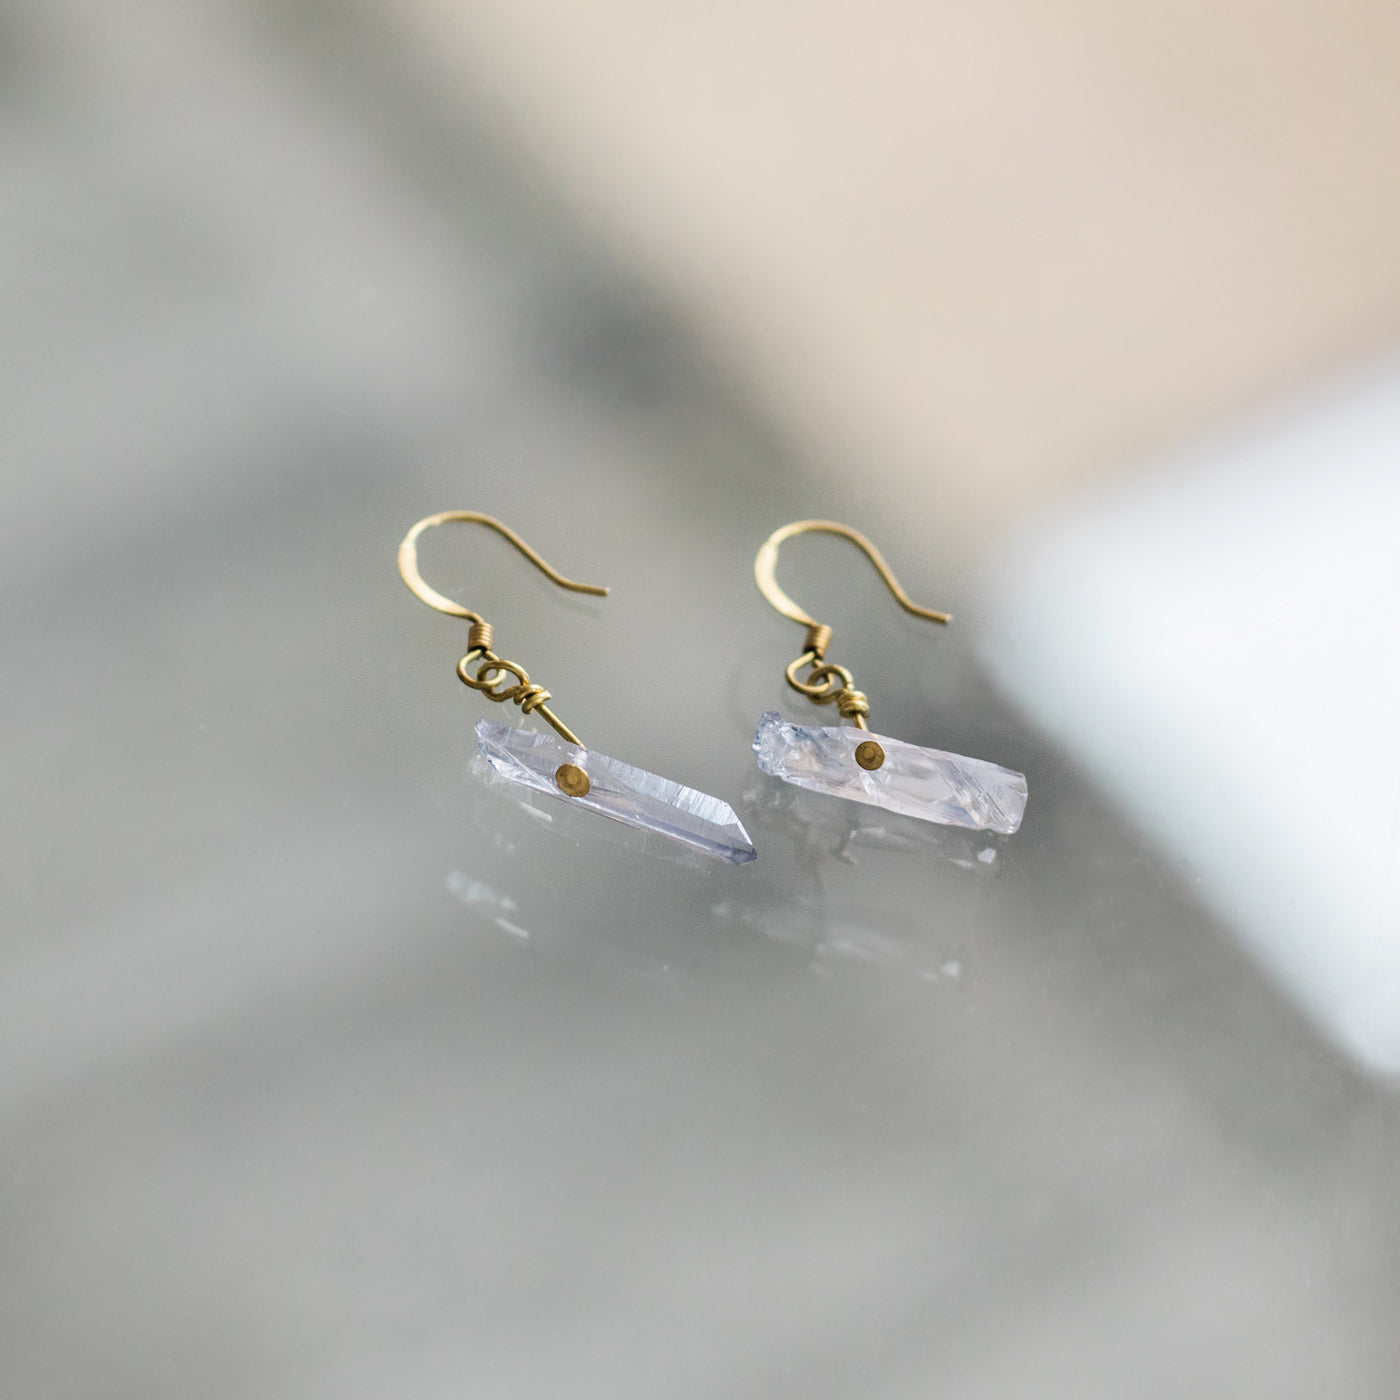 CALM Earrings - Twisted Silver Jewelry